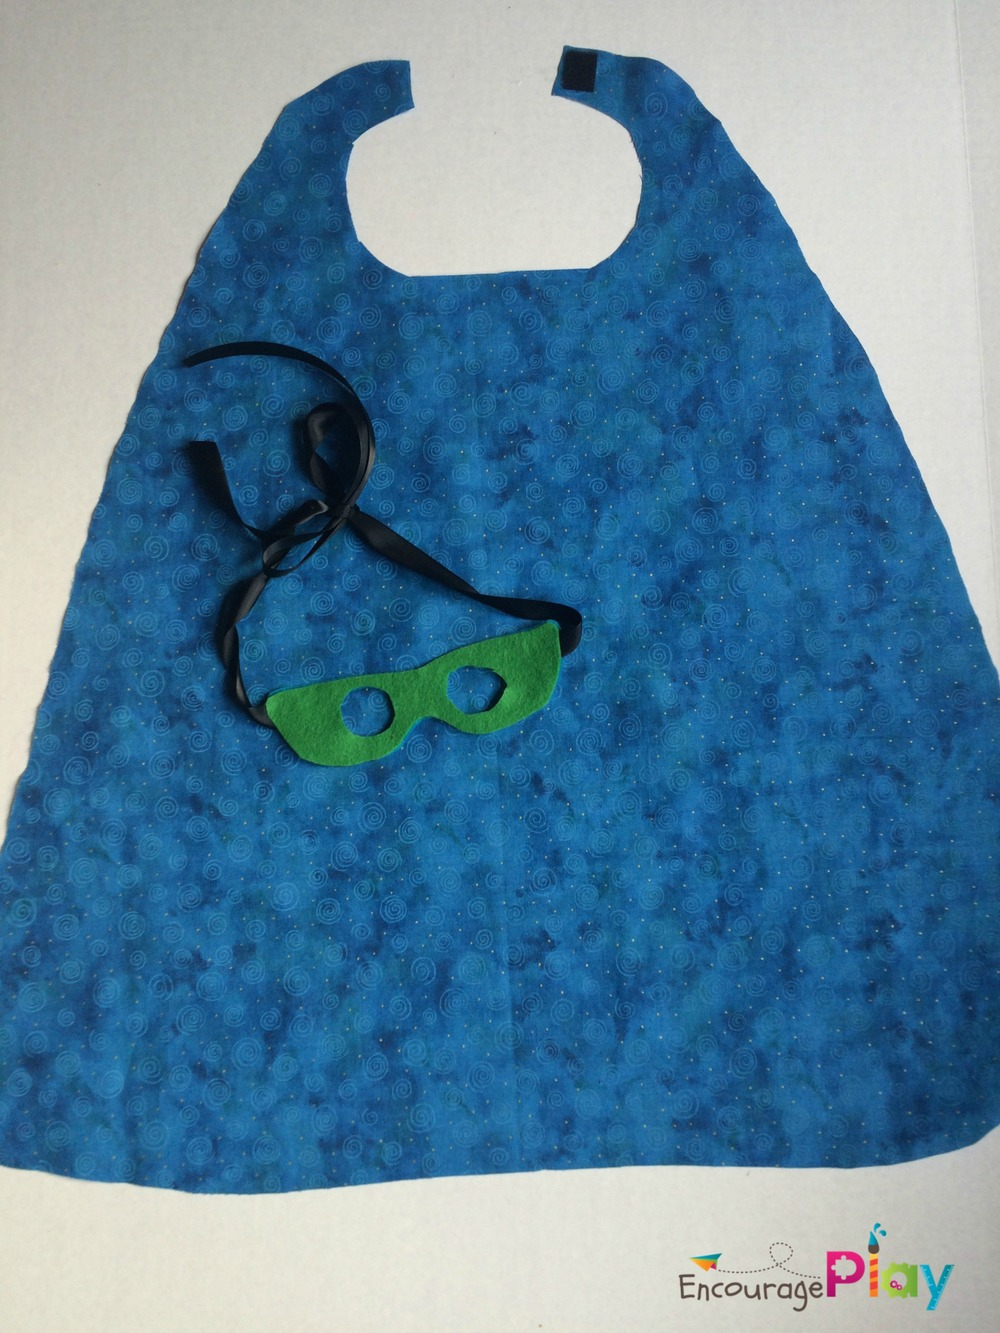 blue cape and green mask by Encourage Play